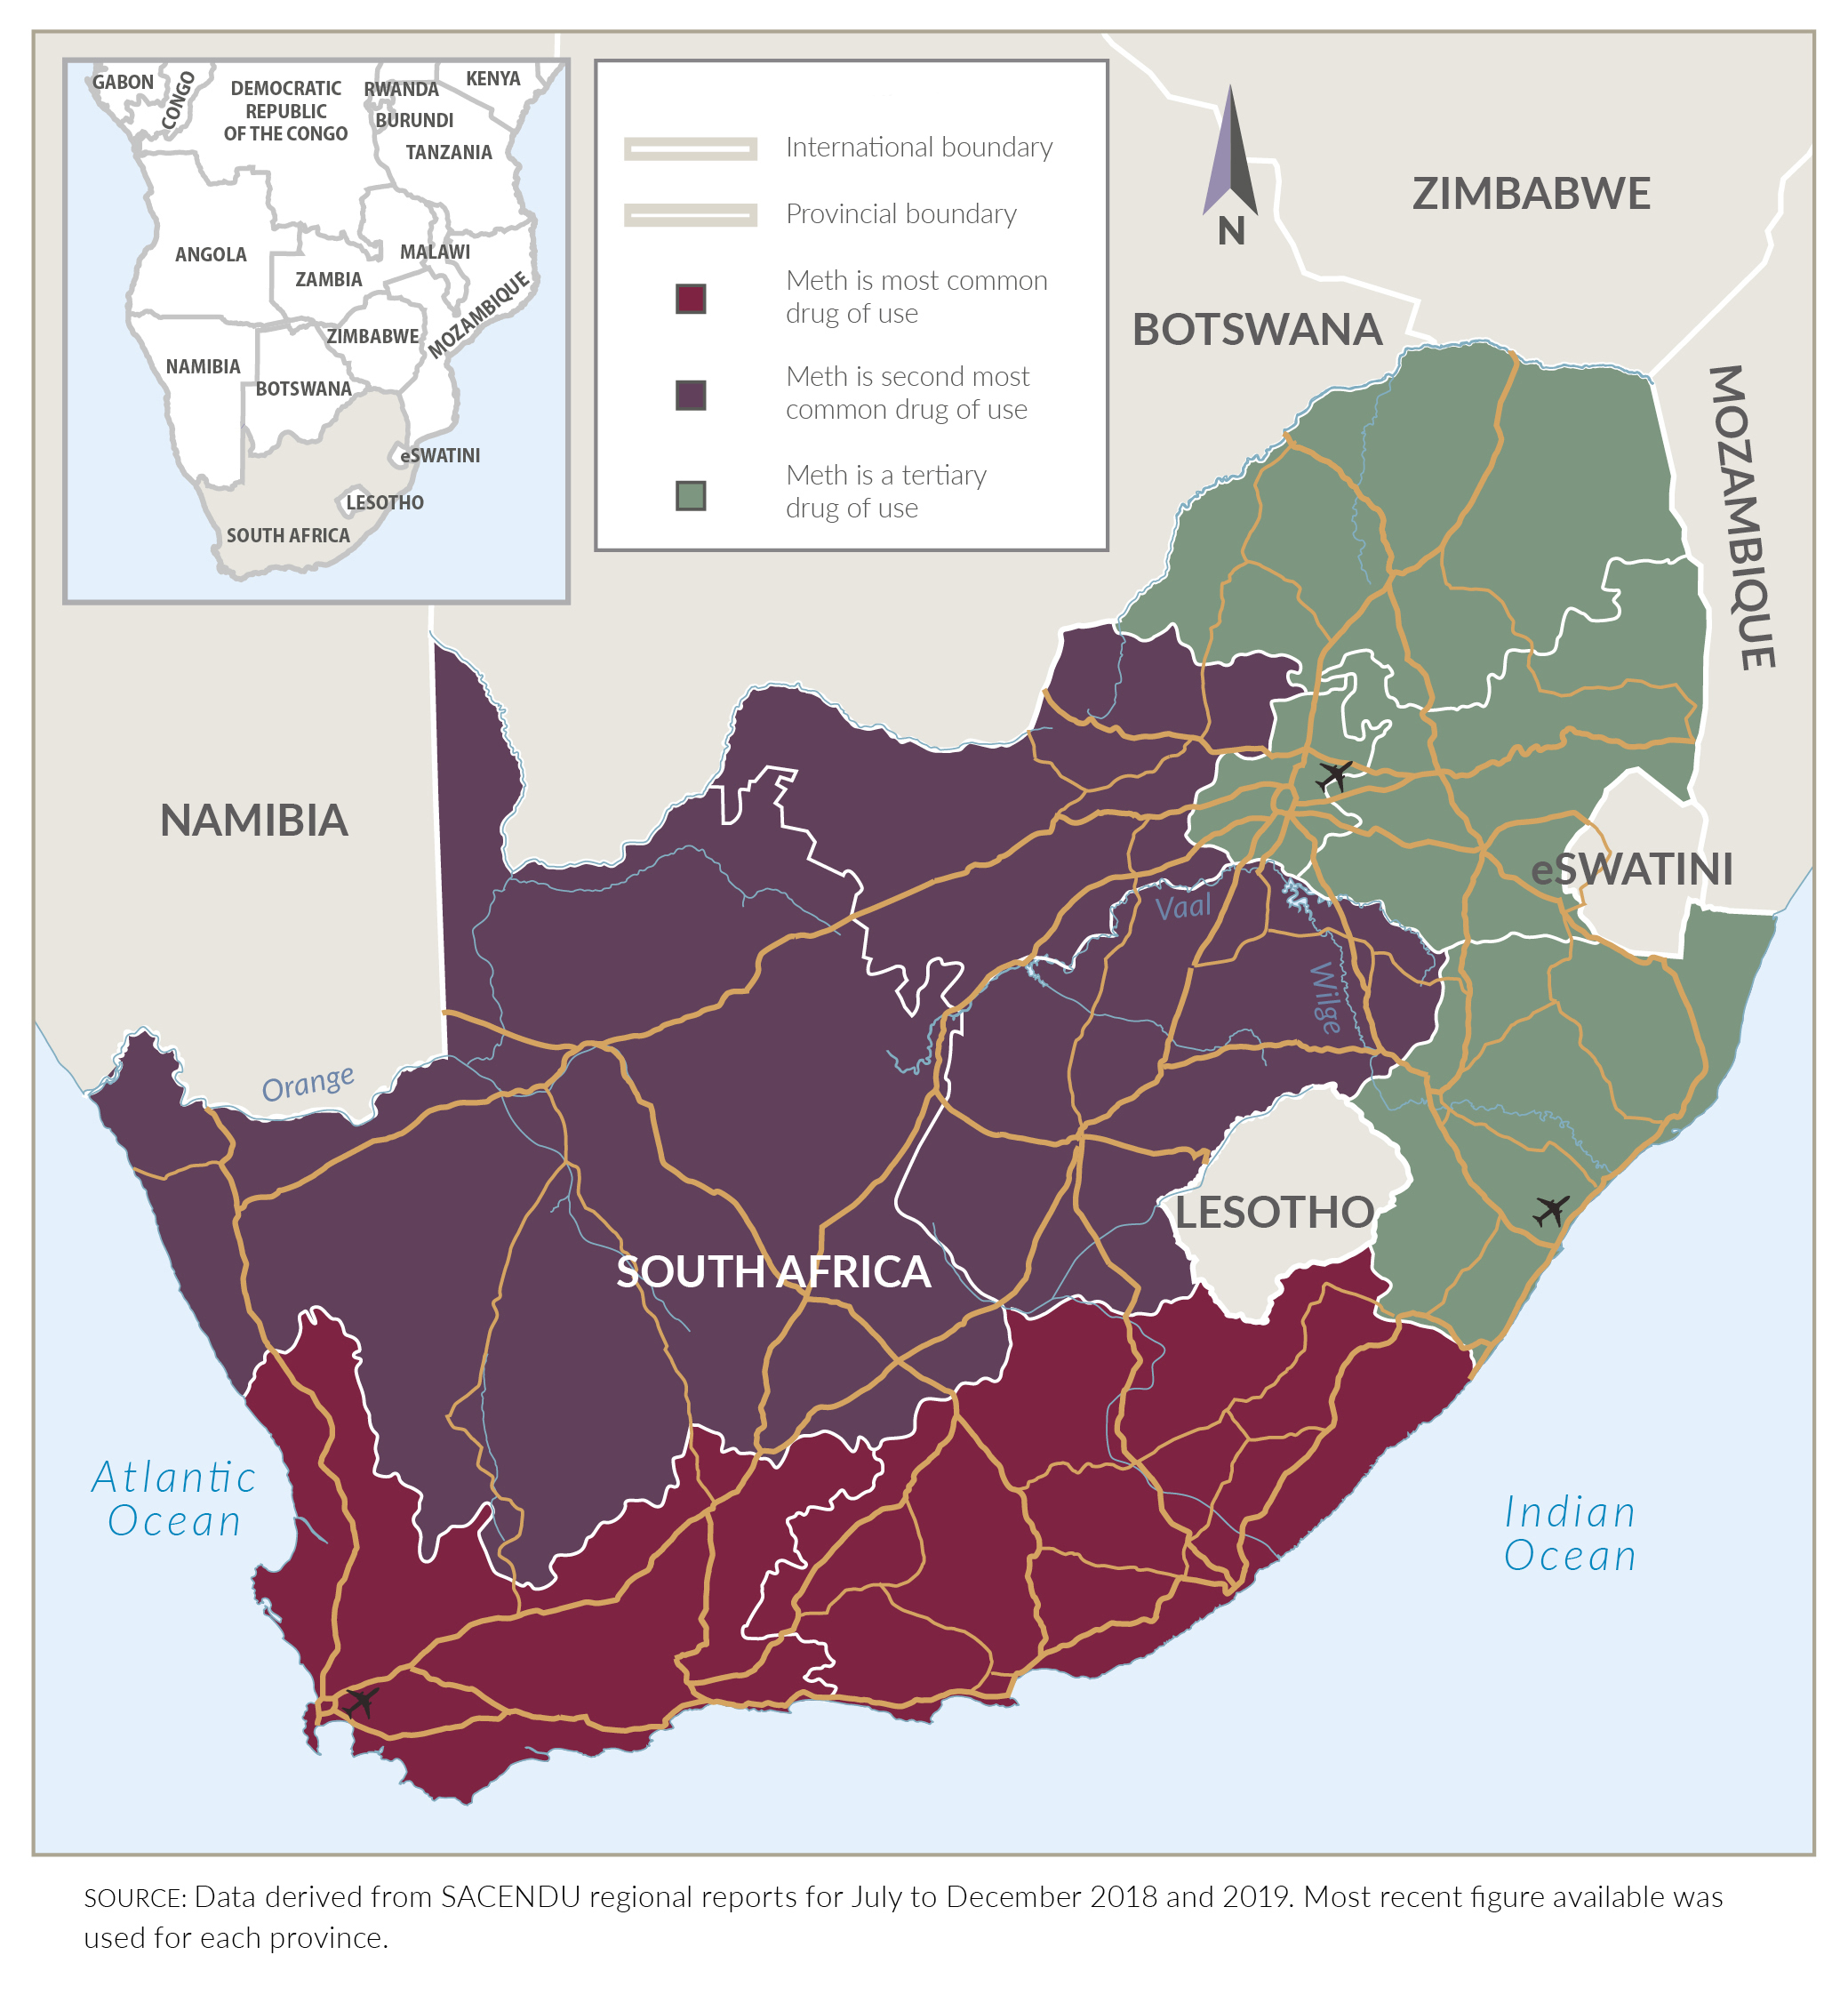 meth use in South Africa